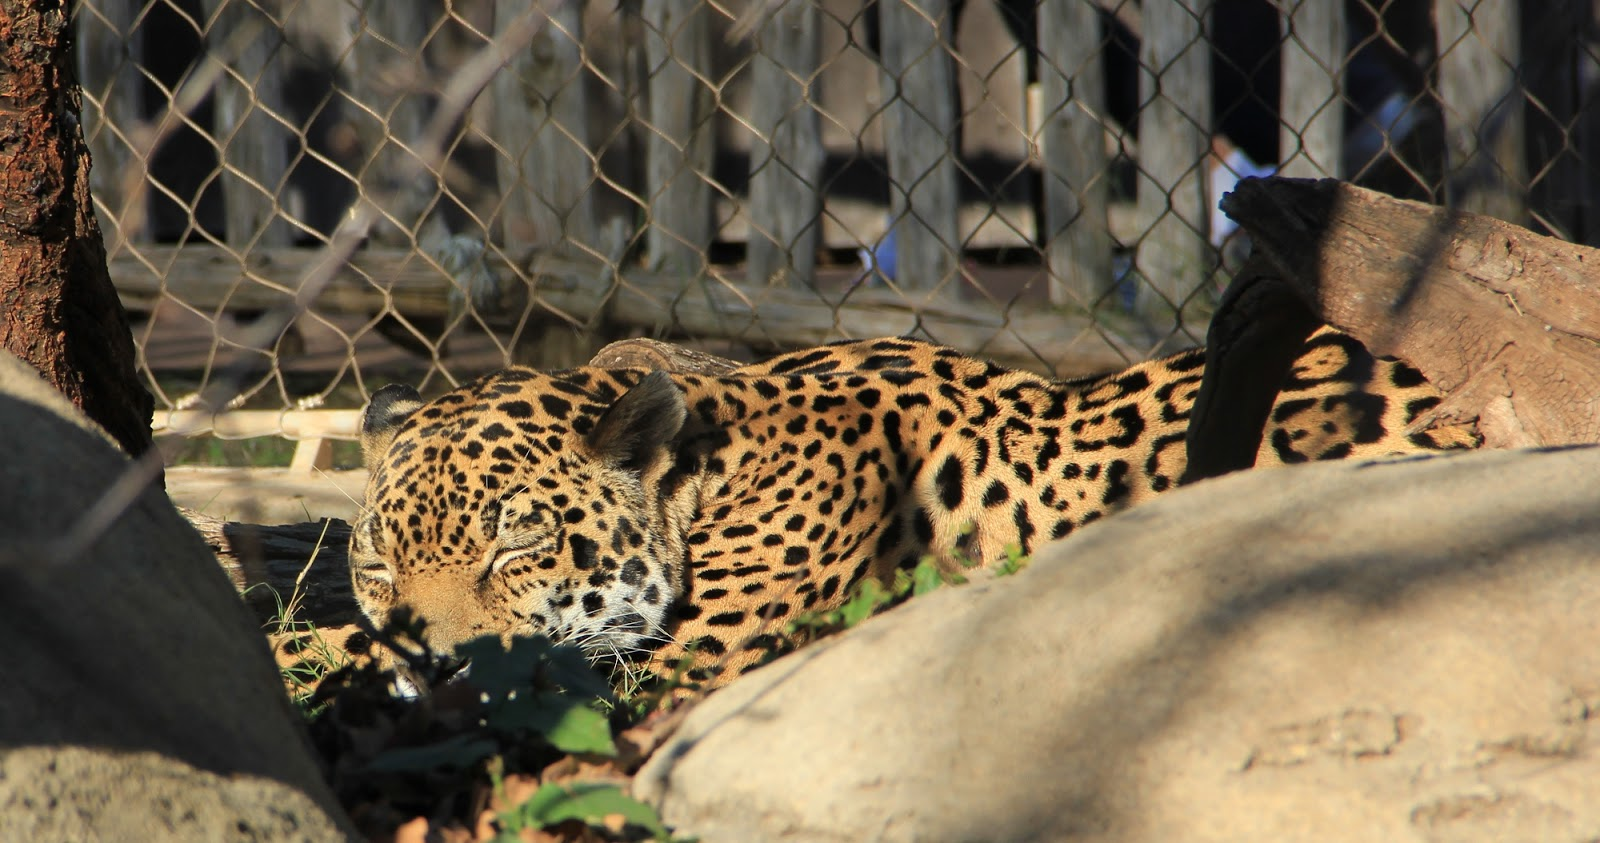 jaguars 2 essay 4 days ago  the jaguar is the largest feline on the american continent, and is the only one of  the world's  jaguars are closely related to leopards and have a number of  similar  2 david burnie, kingfisher (2011) the kingfisher animal.